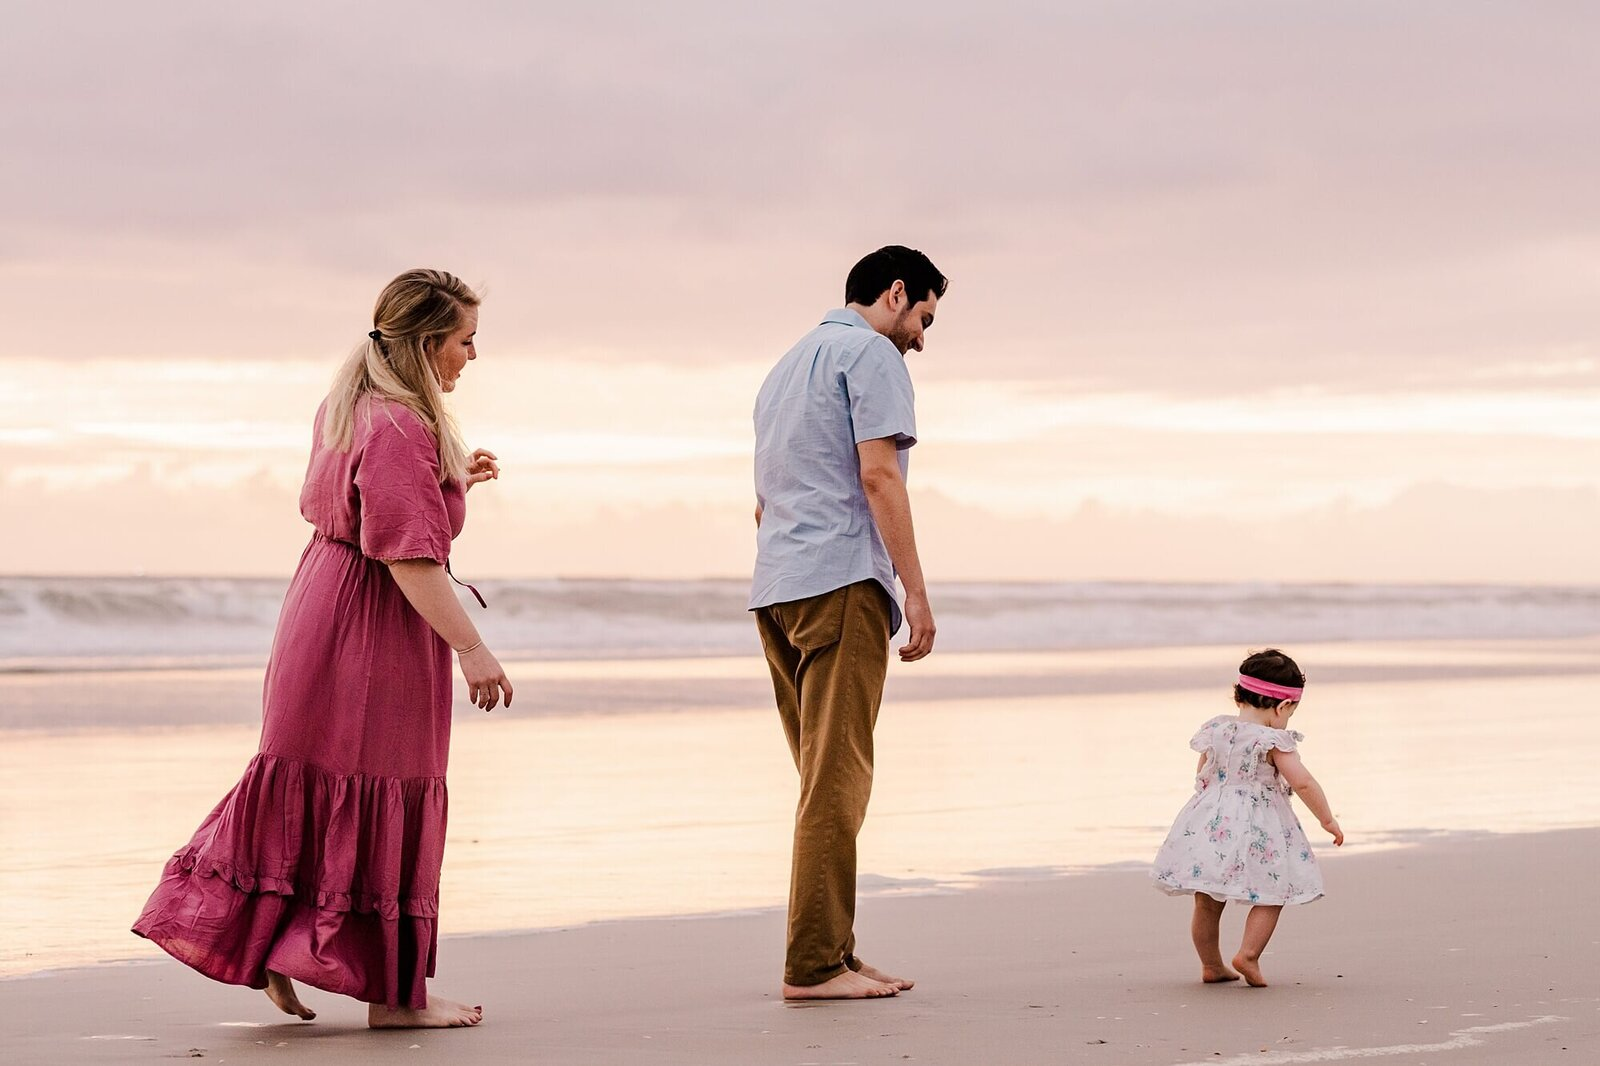 winterhaven-park-family-session-new-smyrna-beach-haleigh-nicole-photography_0001